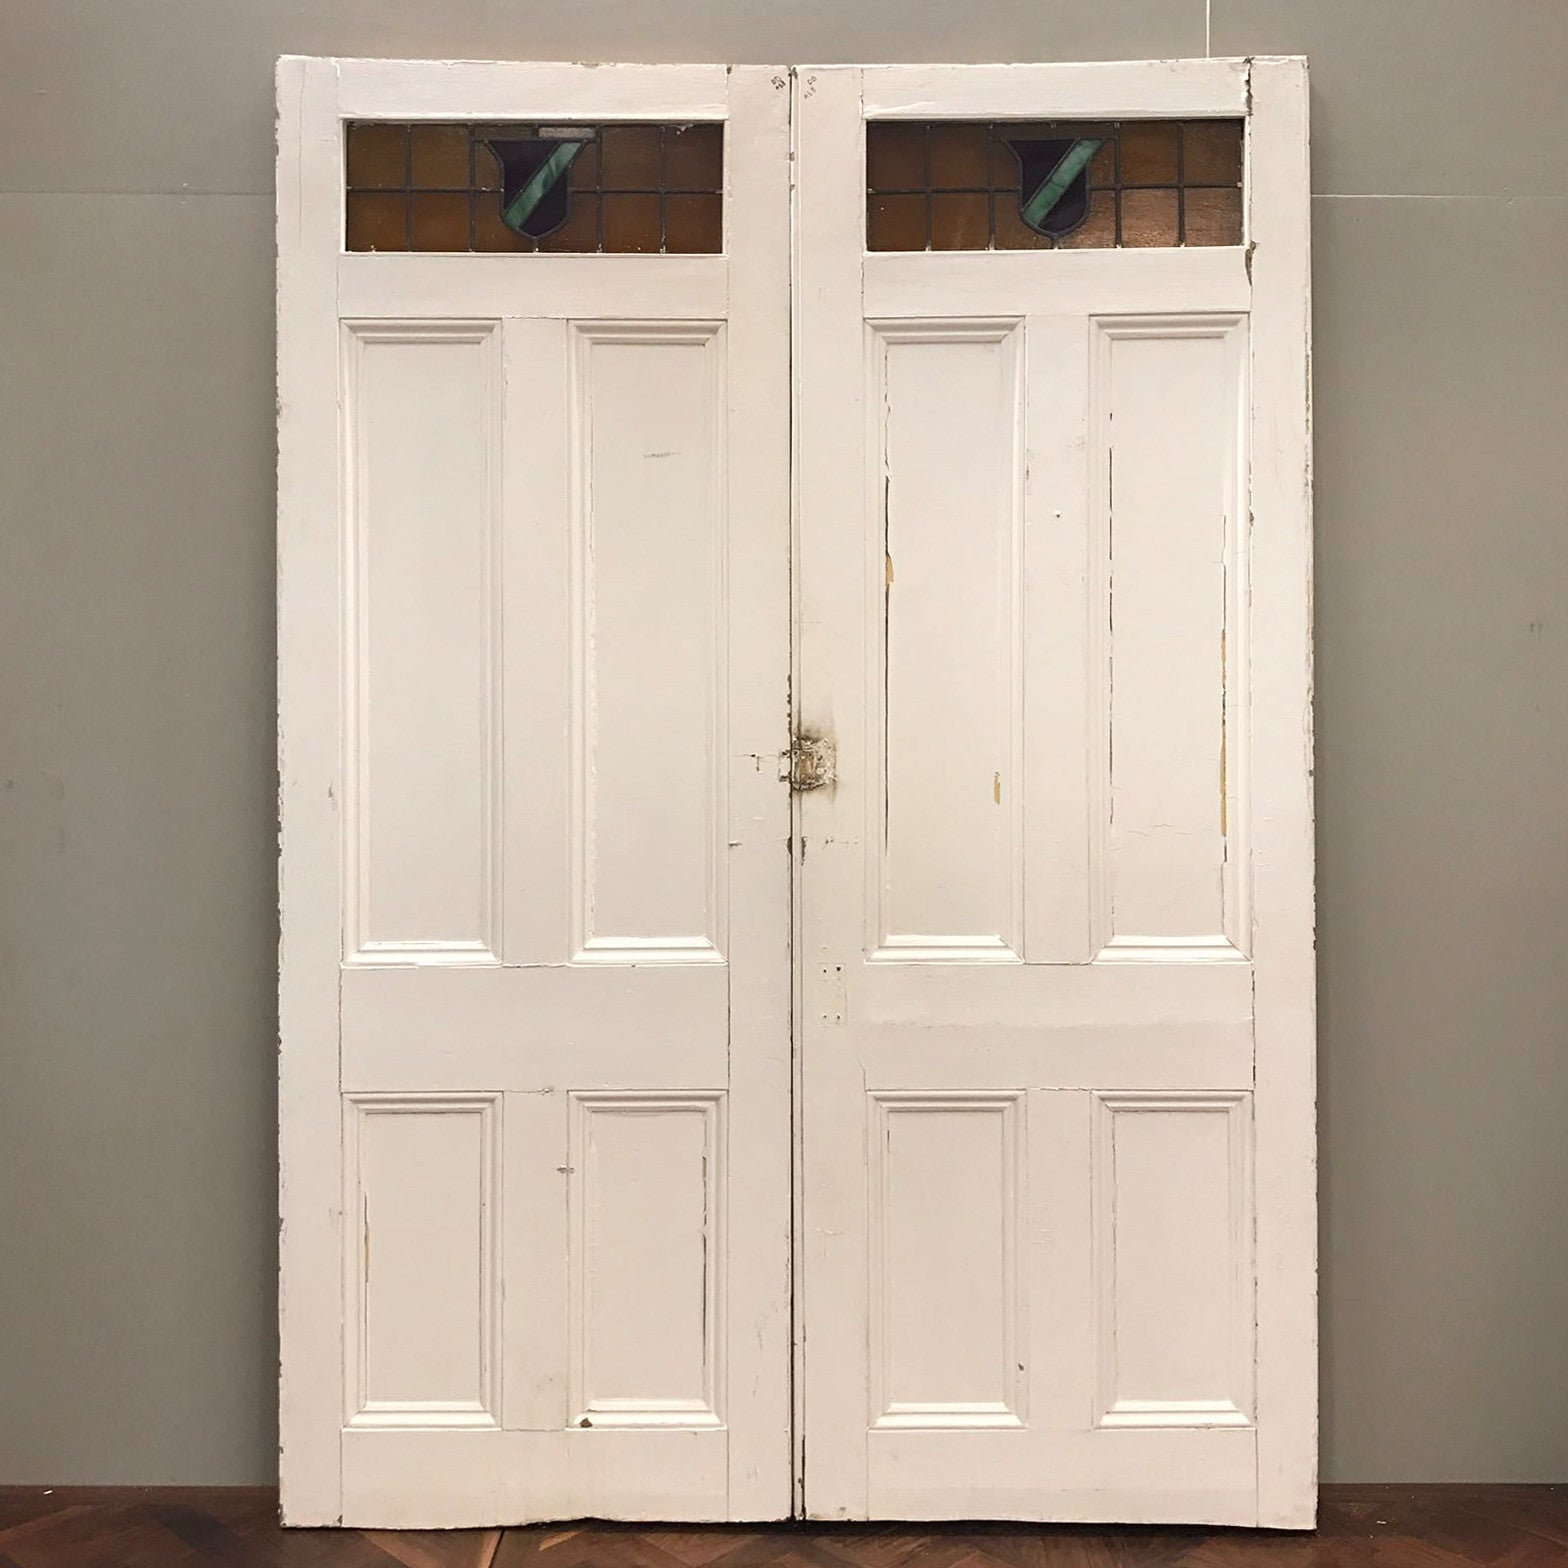 Antique Edwardian Pine Double Doors - 181cm x 265cm - architectural-forum